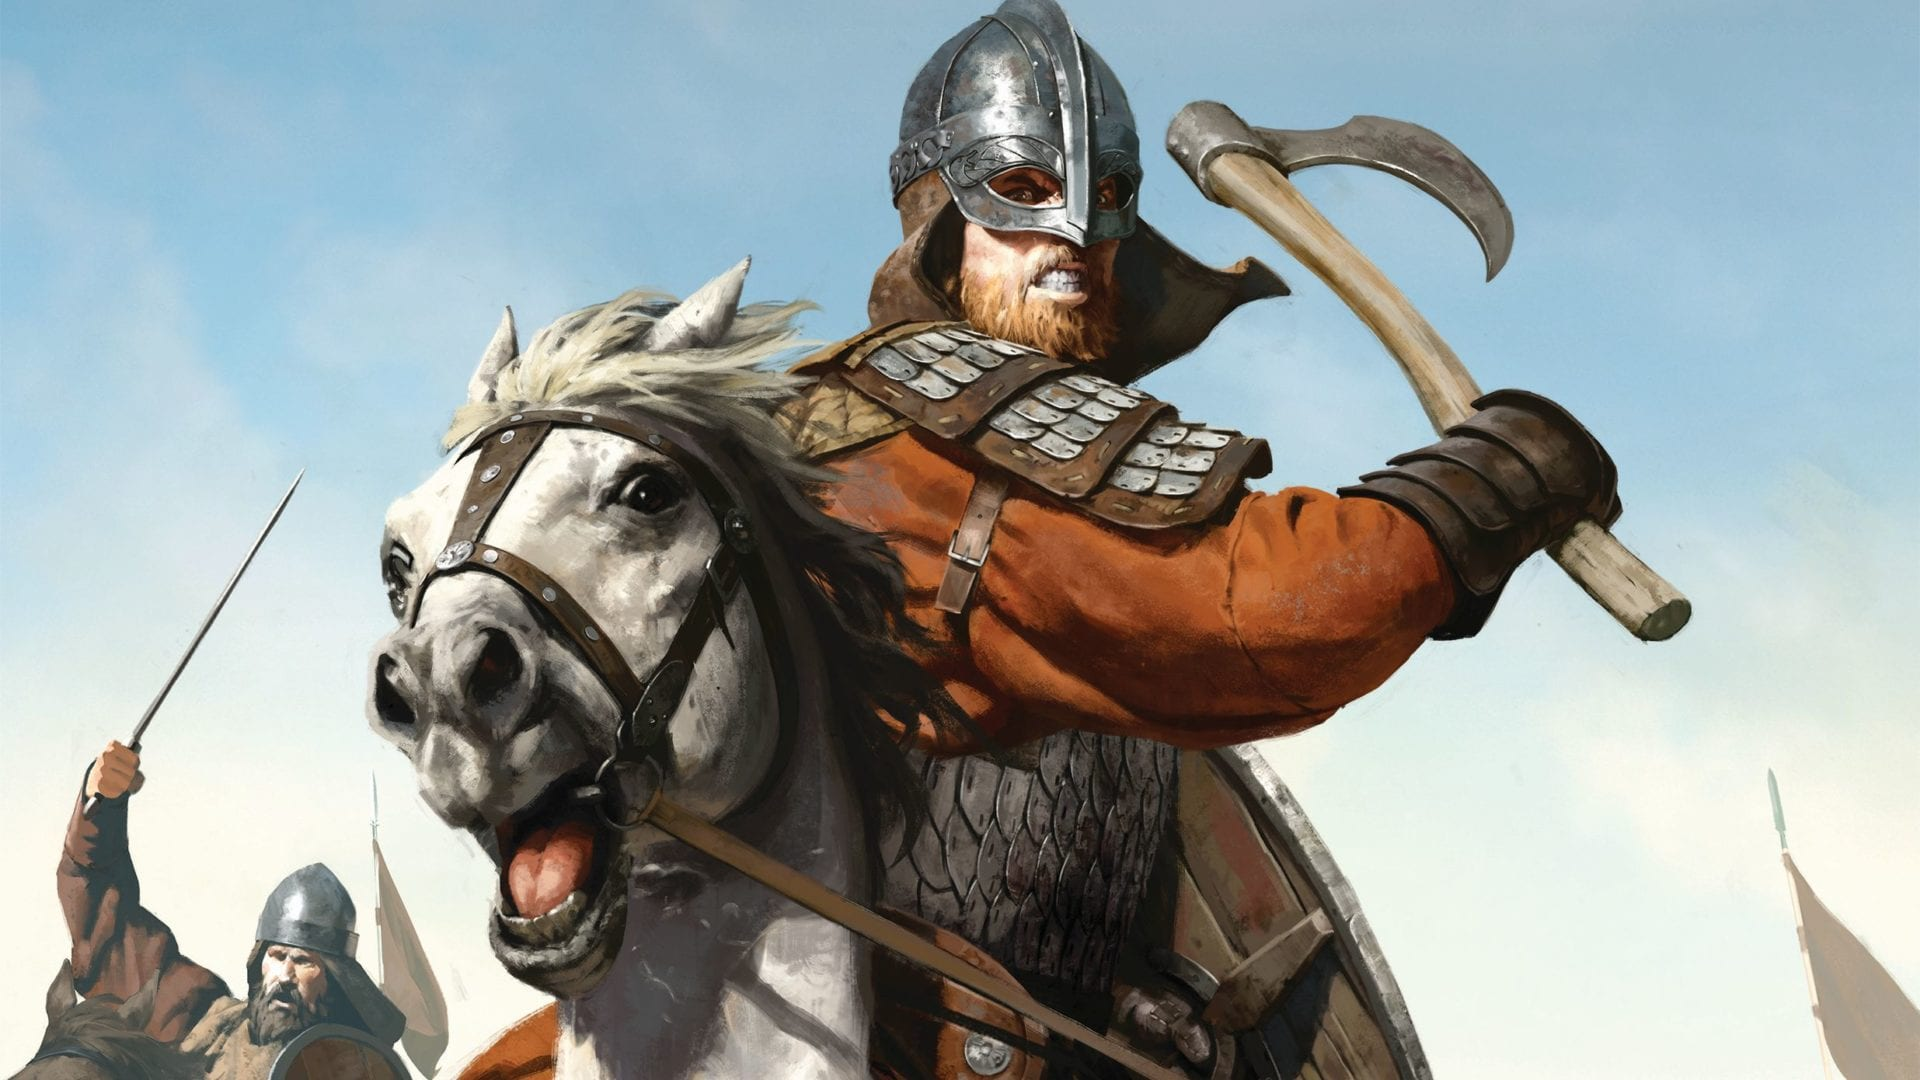 mount and blade 2, join a kingdom, join